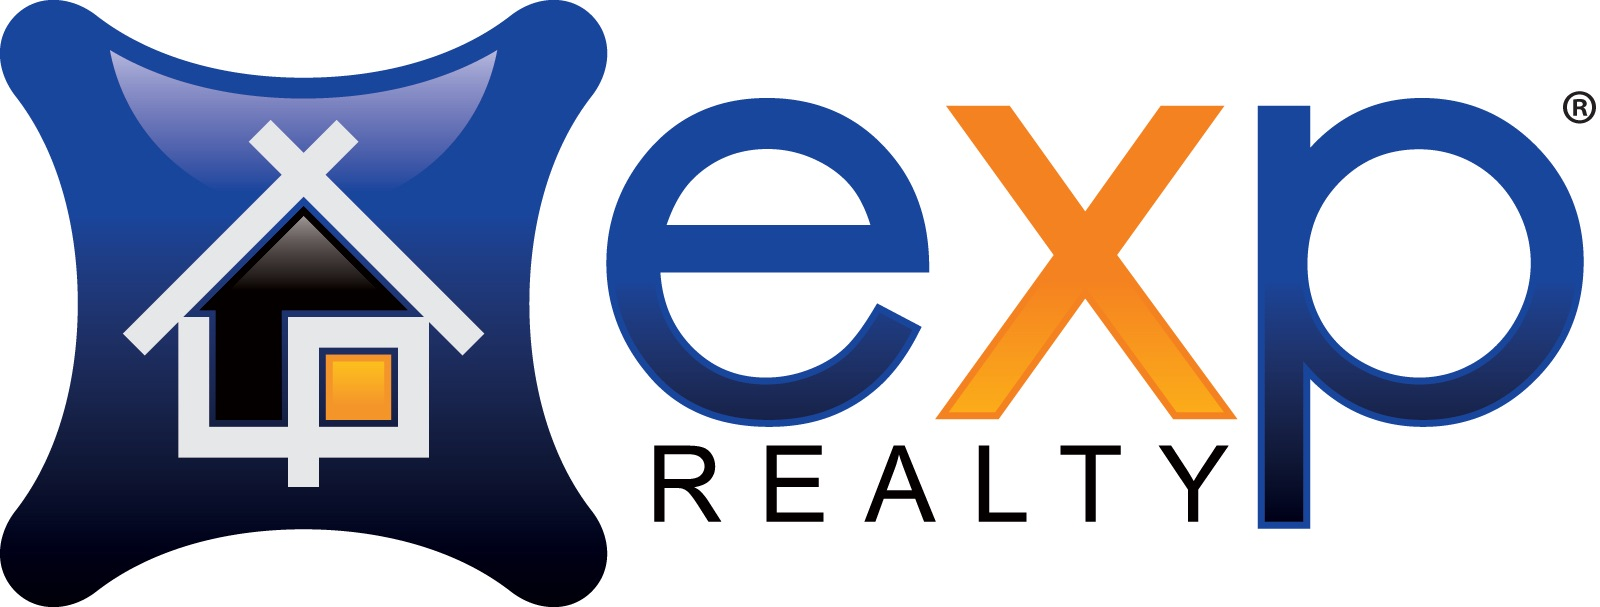 The 678realestate.com Team logo